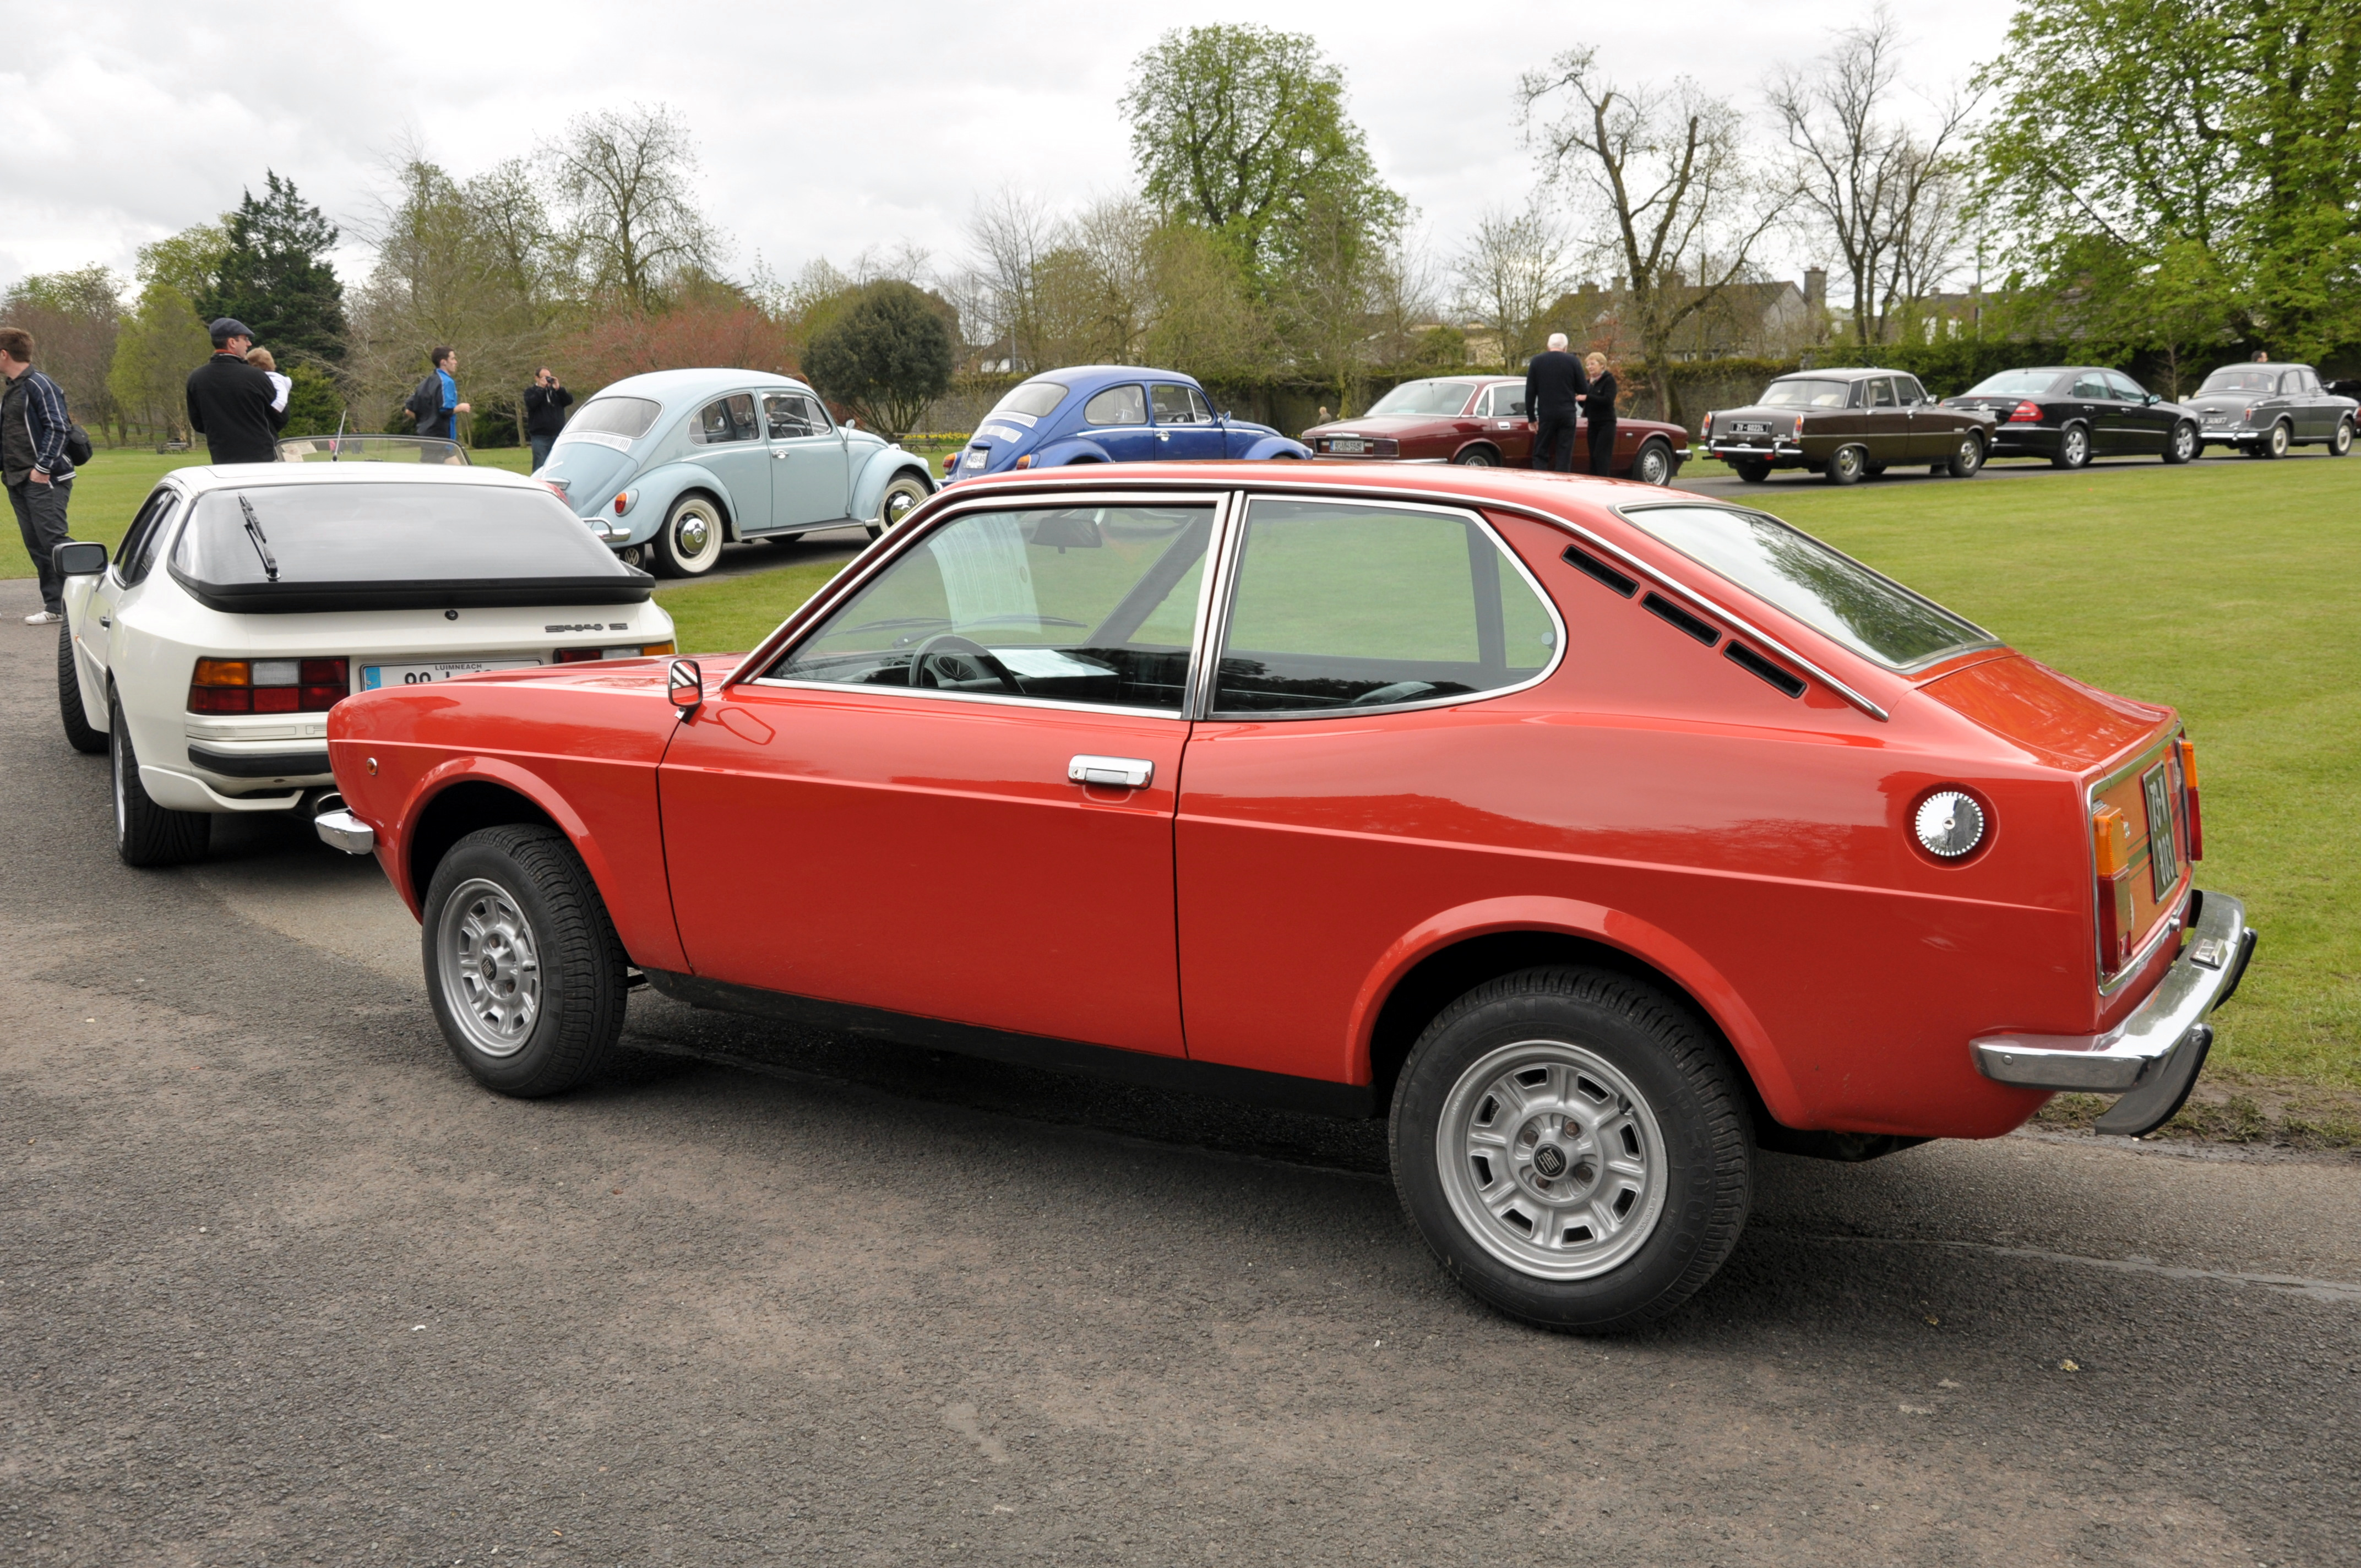 File:FIat 128 Coupe.jpg